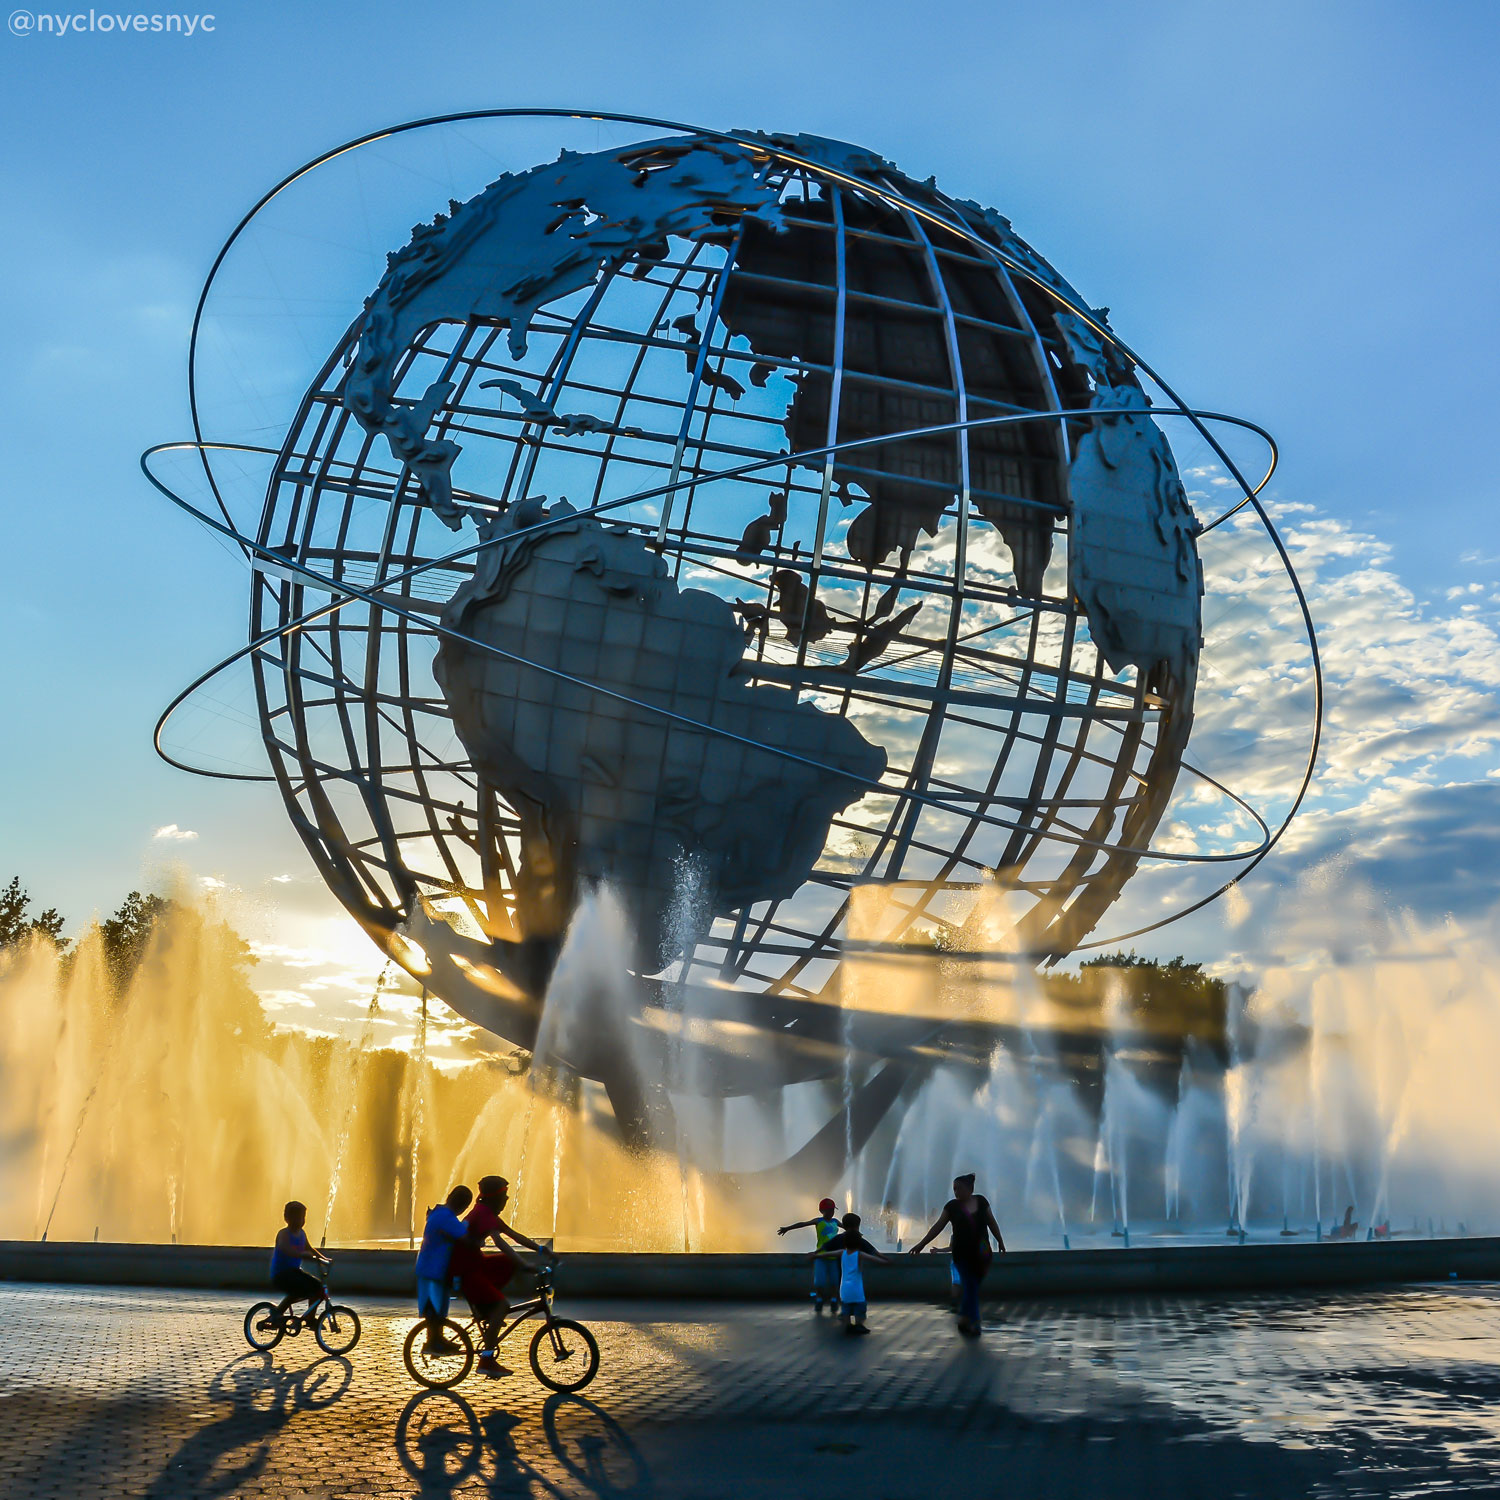 <div class='meta'><div class='origin-logo' data-origin='none'></div><span class='caption-text' data-credit='Noel Y. Calingasan (@nyclovesnyc)'>The Unisphere in Flushing Meadows</span></div>